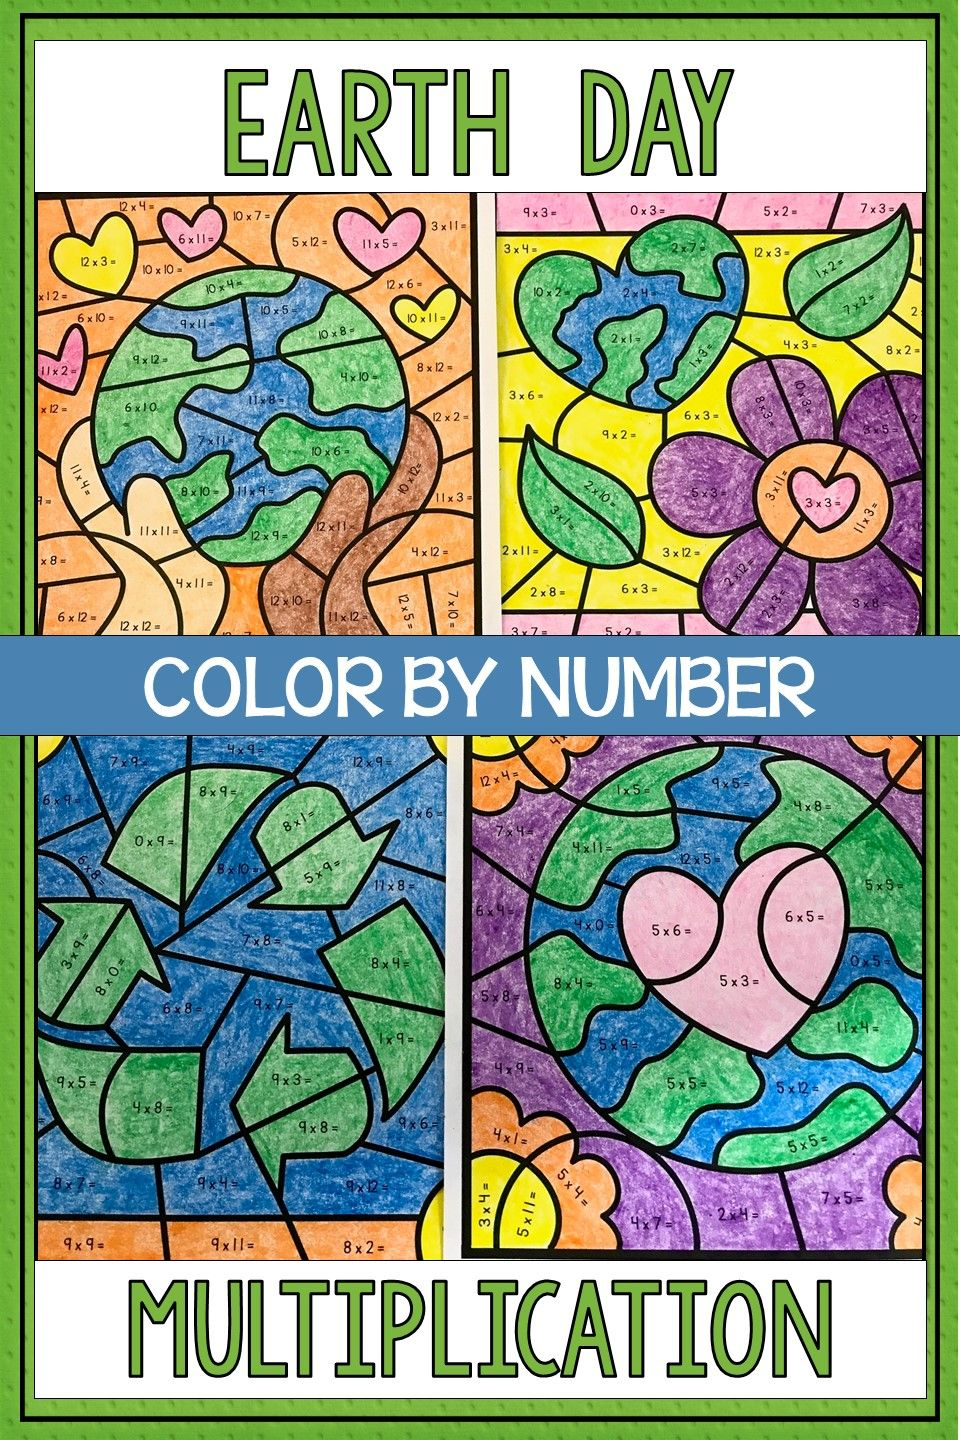 Earth Day Math Color by Number Multiplication   Earth day activities [ 1440 x 960 Pixel ]